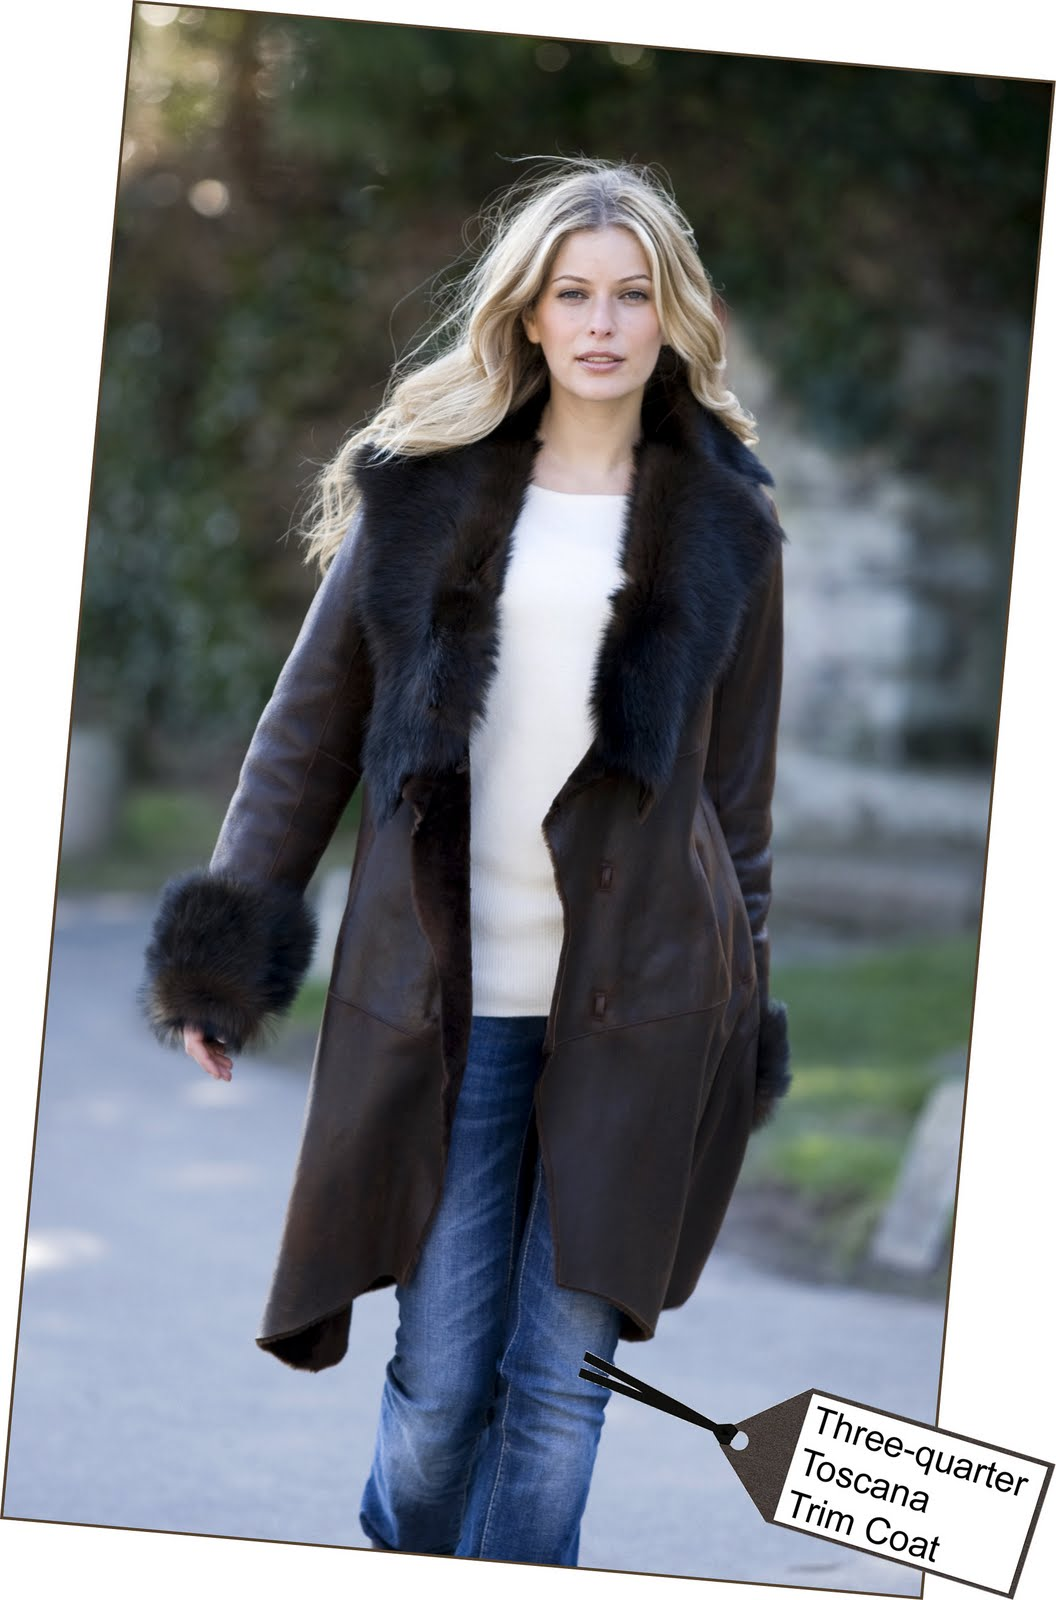 Celtic Sheepskin: Celtic Sheepskin on the new trends… and up first